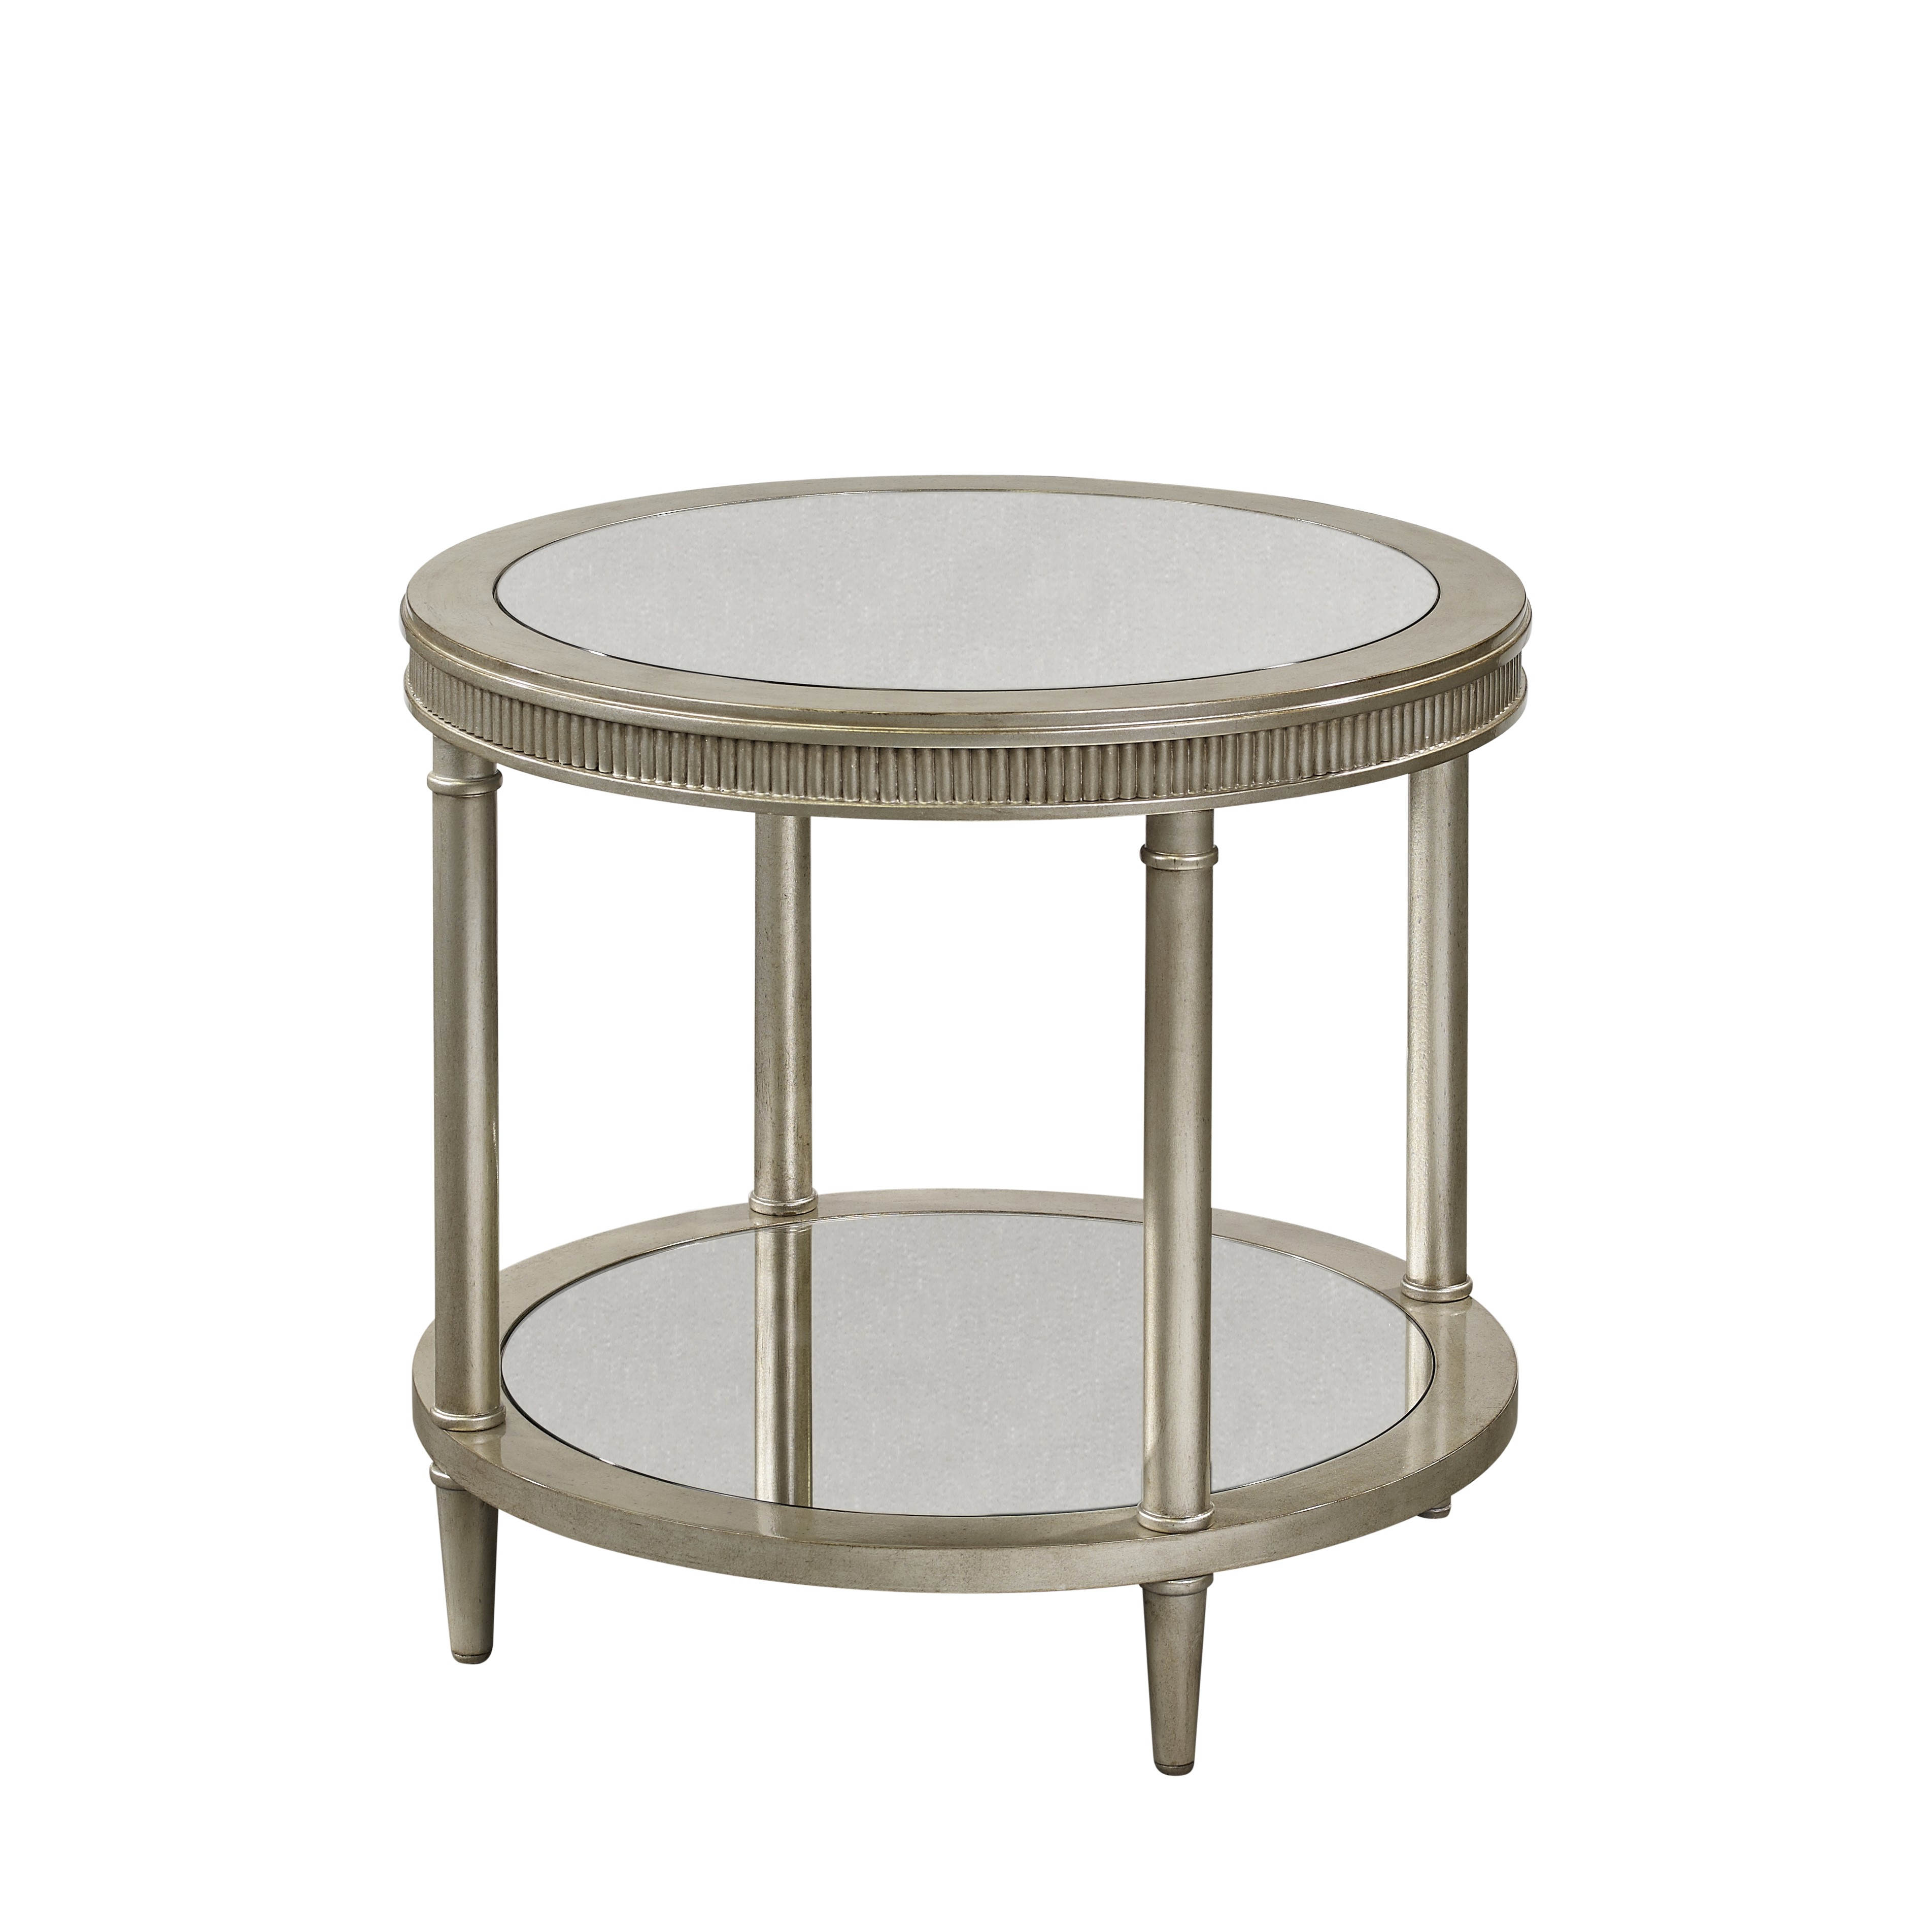 Bett Mirror Vanesta Antique Silver Round End Table Click To Enlarge